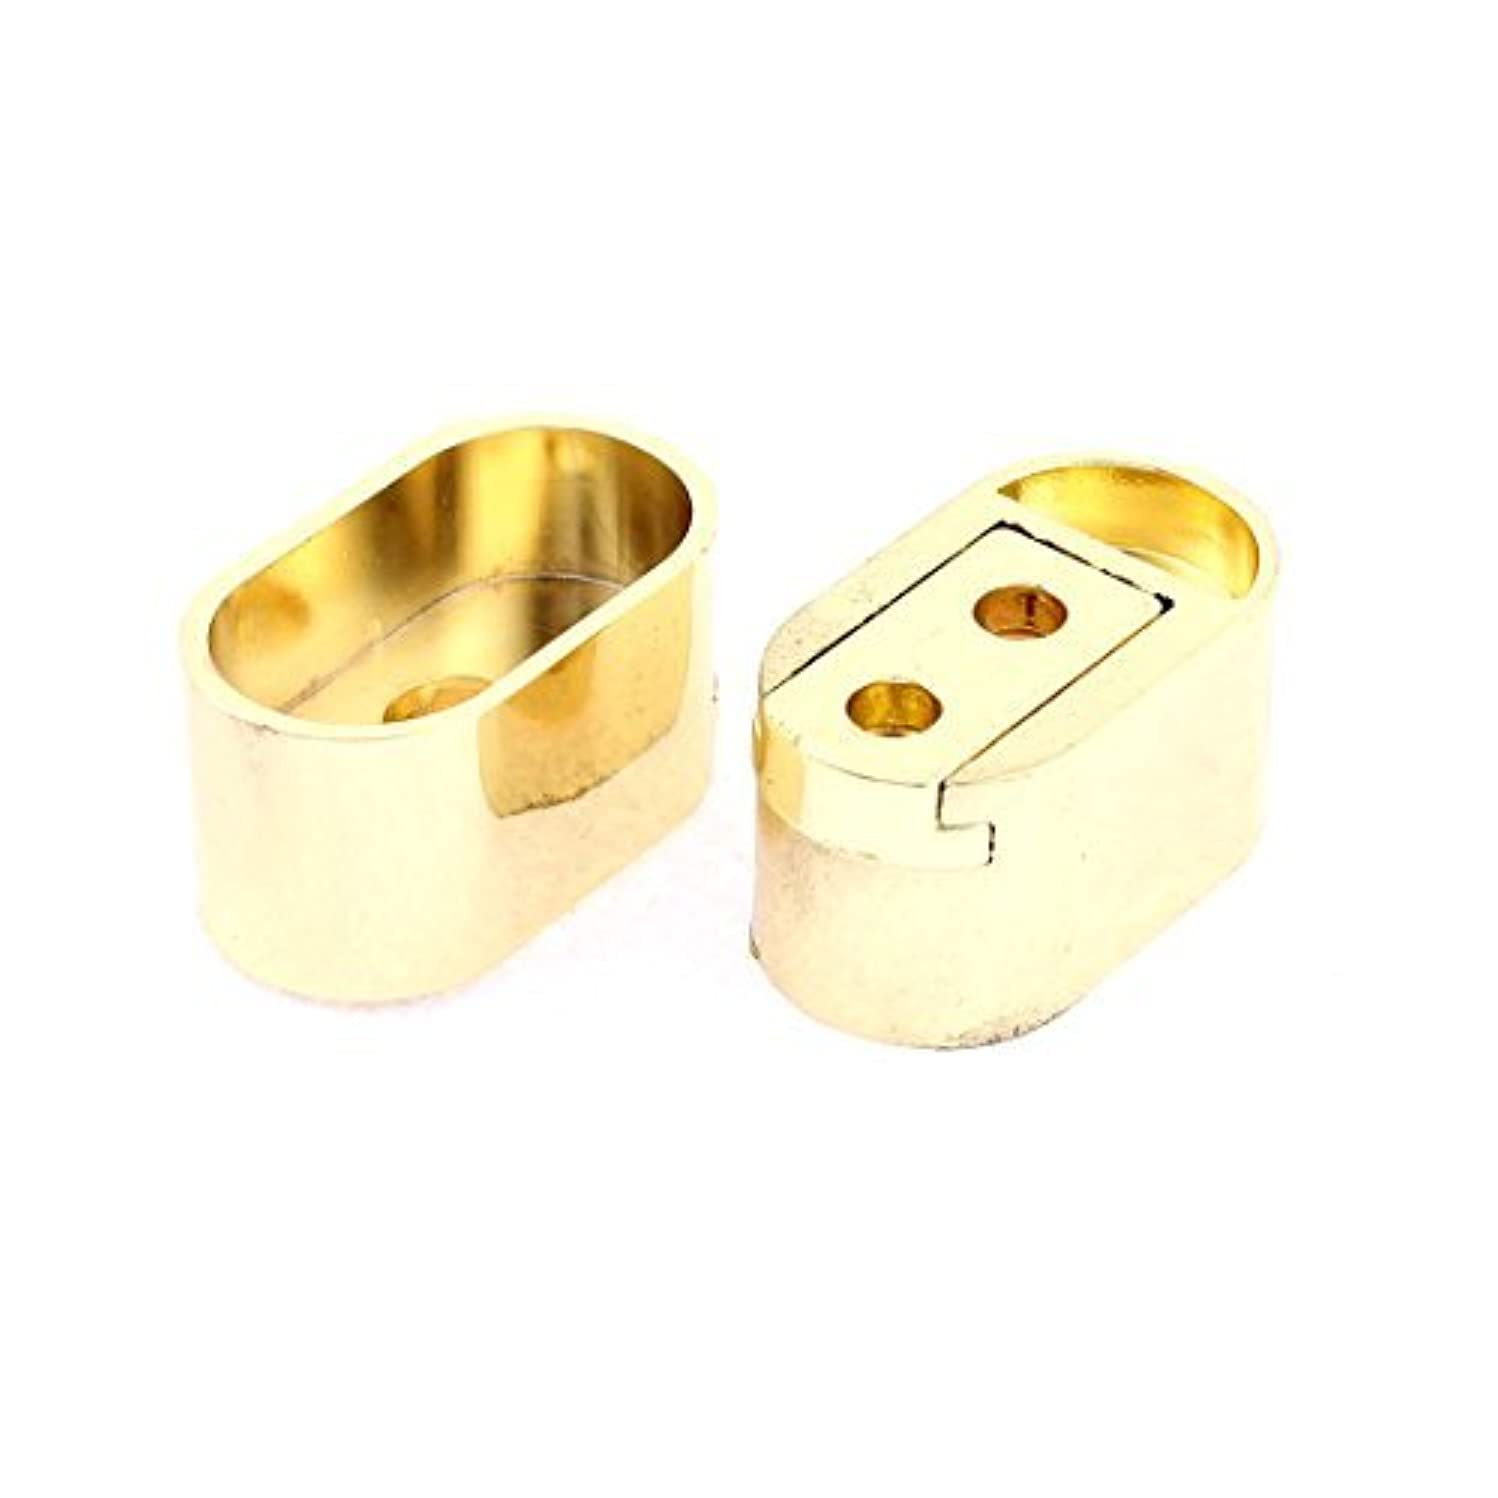 DealMux Clothes Closet Rod Flange Titular Bracket Tone 2pcs ouro